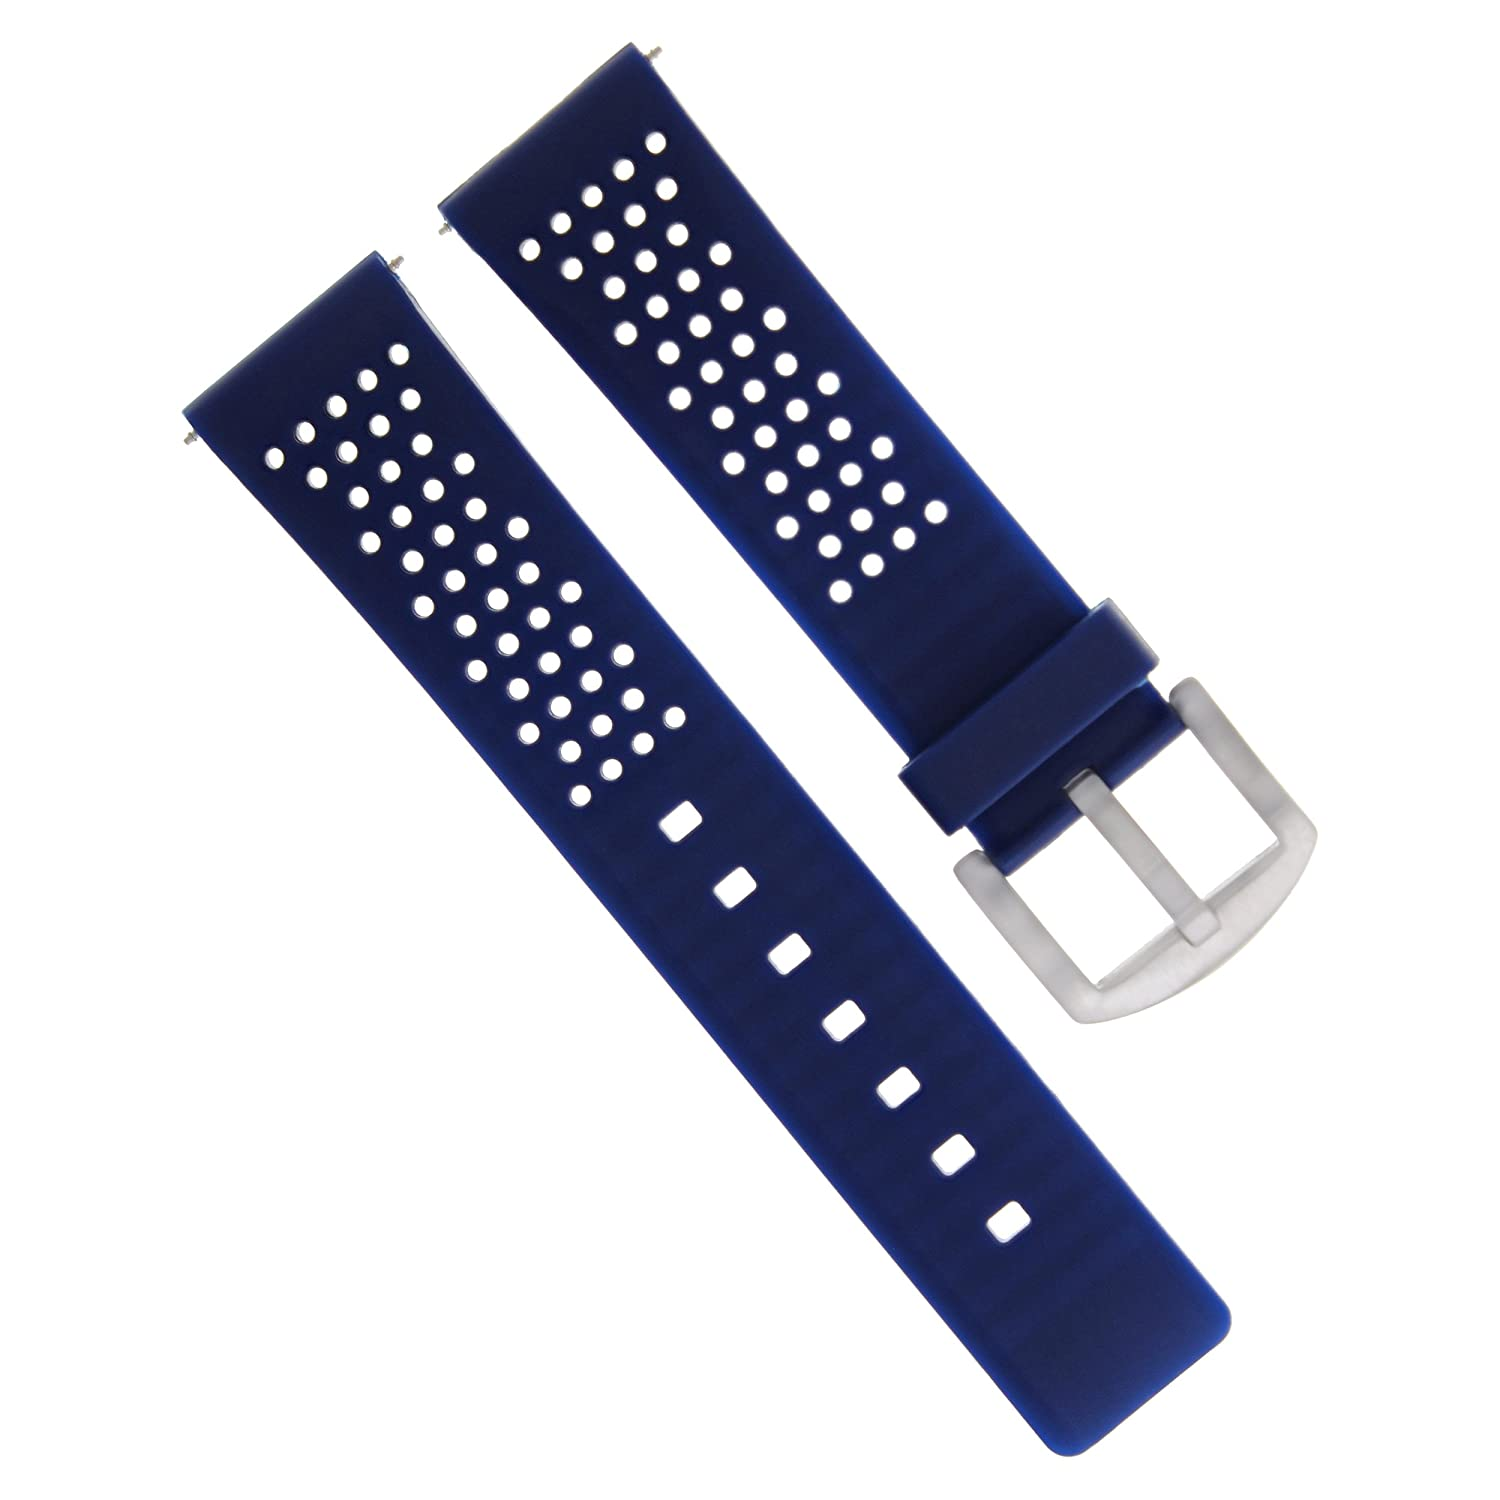 20 mm Soft Rubber Band Strap for Invicta Russian 1959ダイバー自動ブルー4p  B07D6PTWJ7